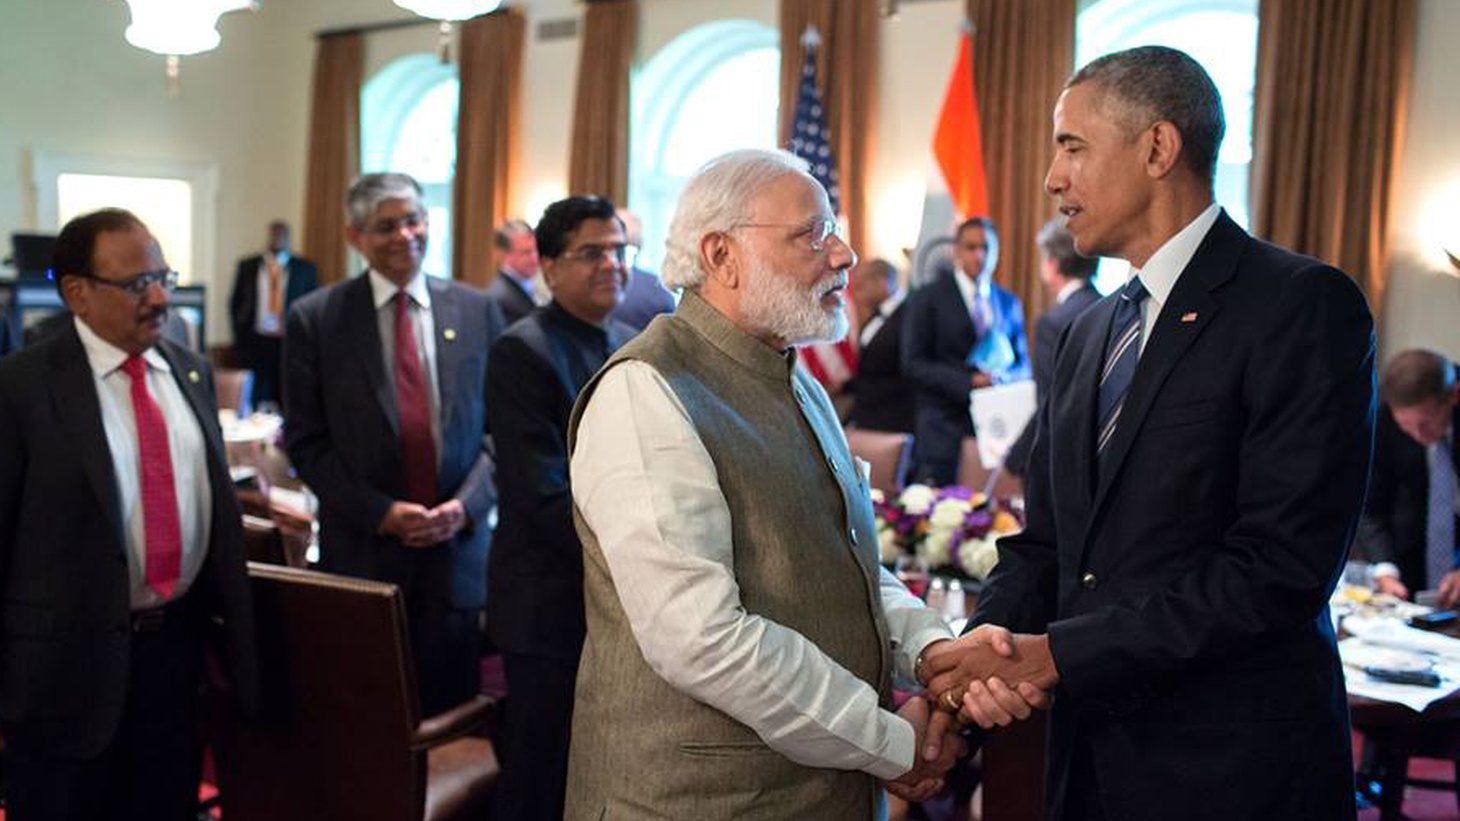 India's Prime Minister Narendra Modi is in Washington this week as US relations with the subcontinent are improving. We hear about the similarities between two democracies, their differences on human rights—and what each hopes to get from the other.